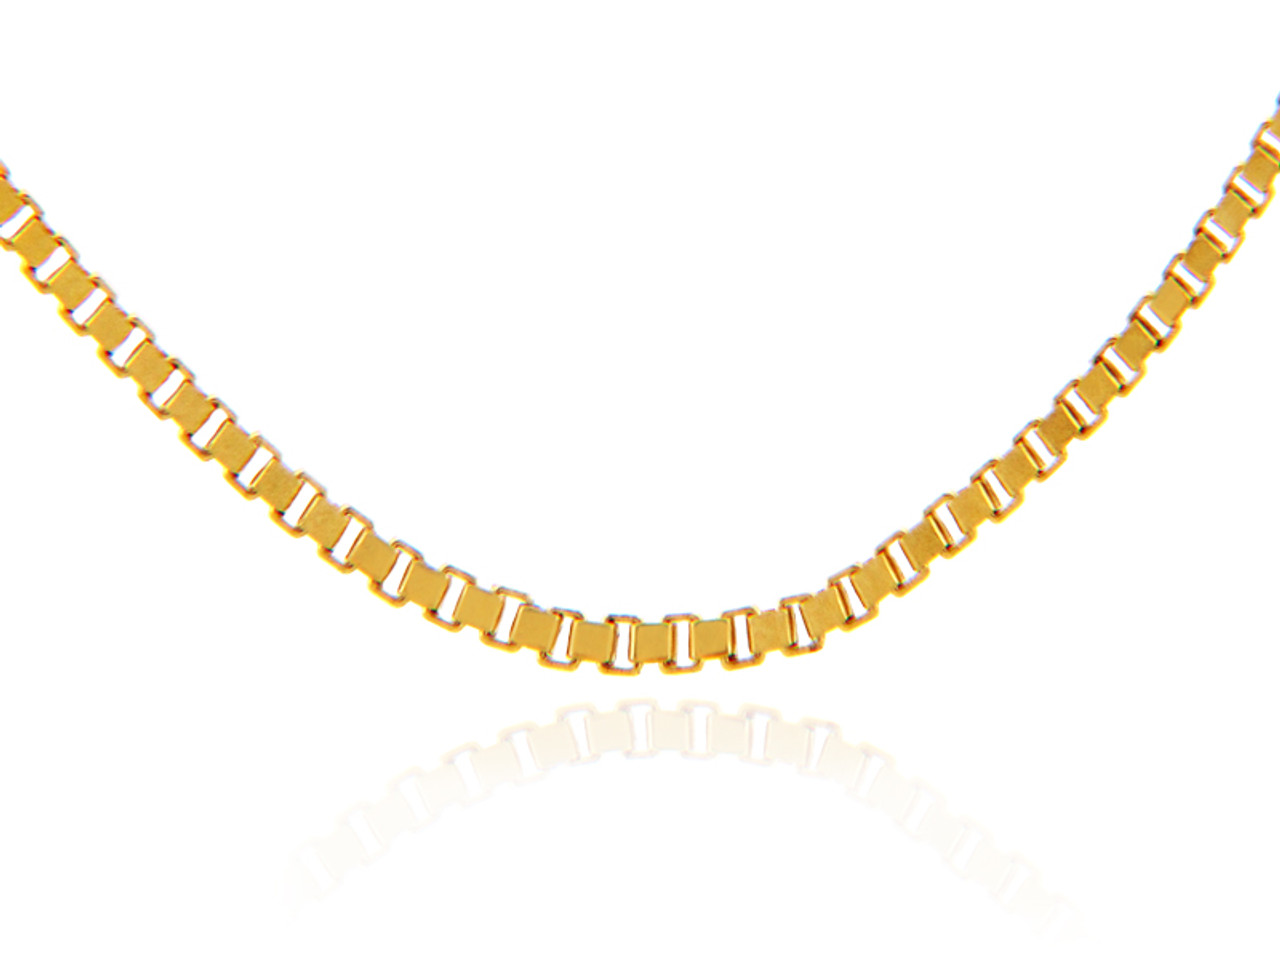 ki sone proddetail glod rs gold piece gj chain at chains